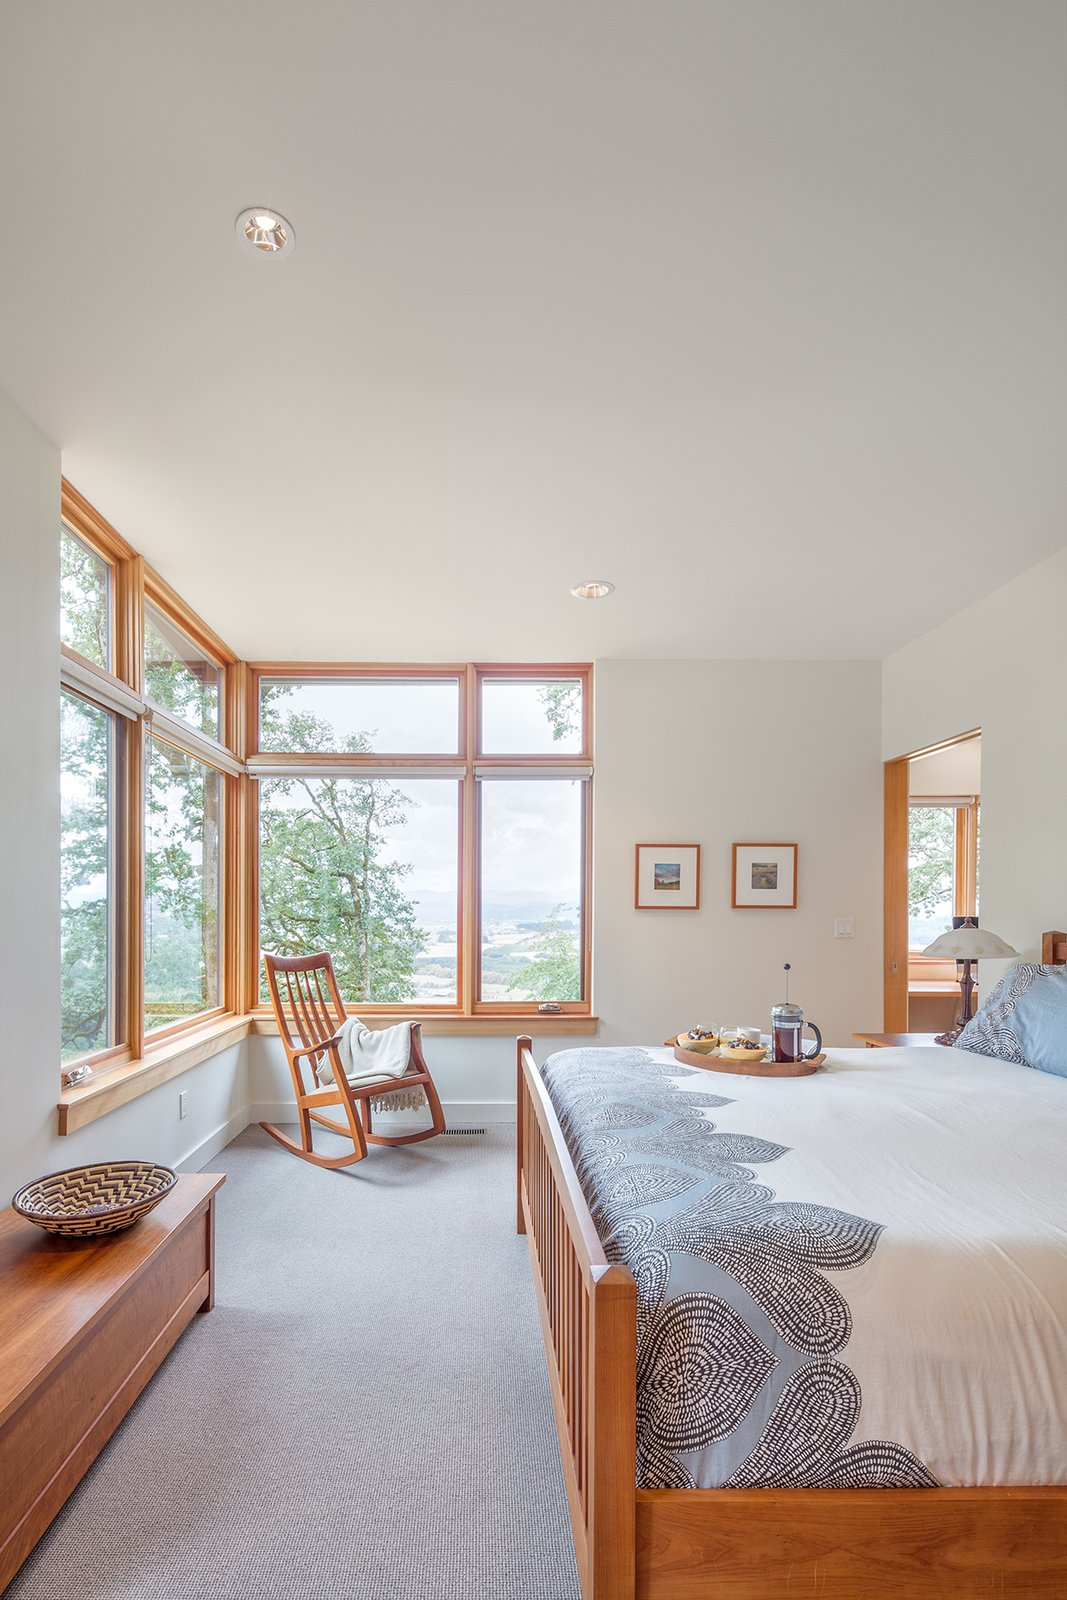 Full height corner windows in the master bedroom frame views towards the Yamhill Valley beyond.